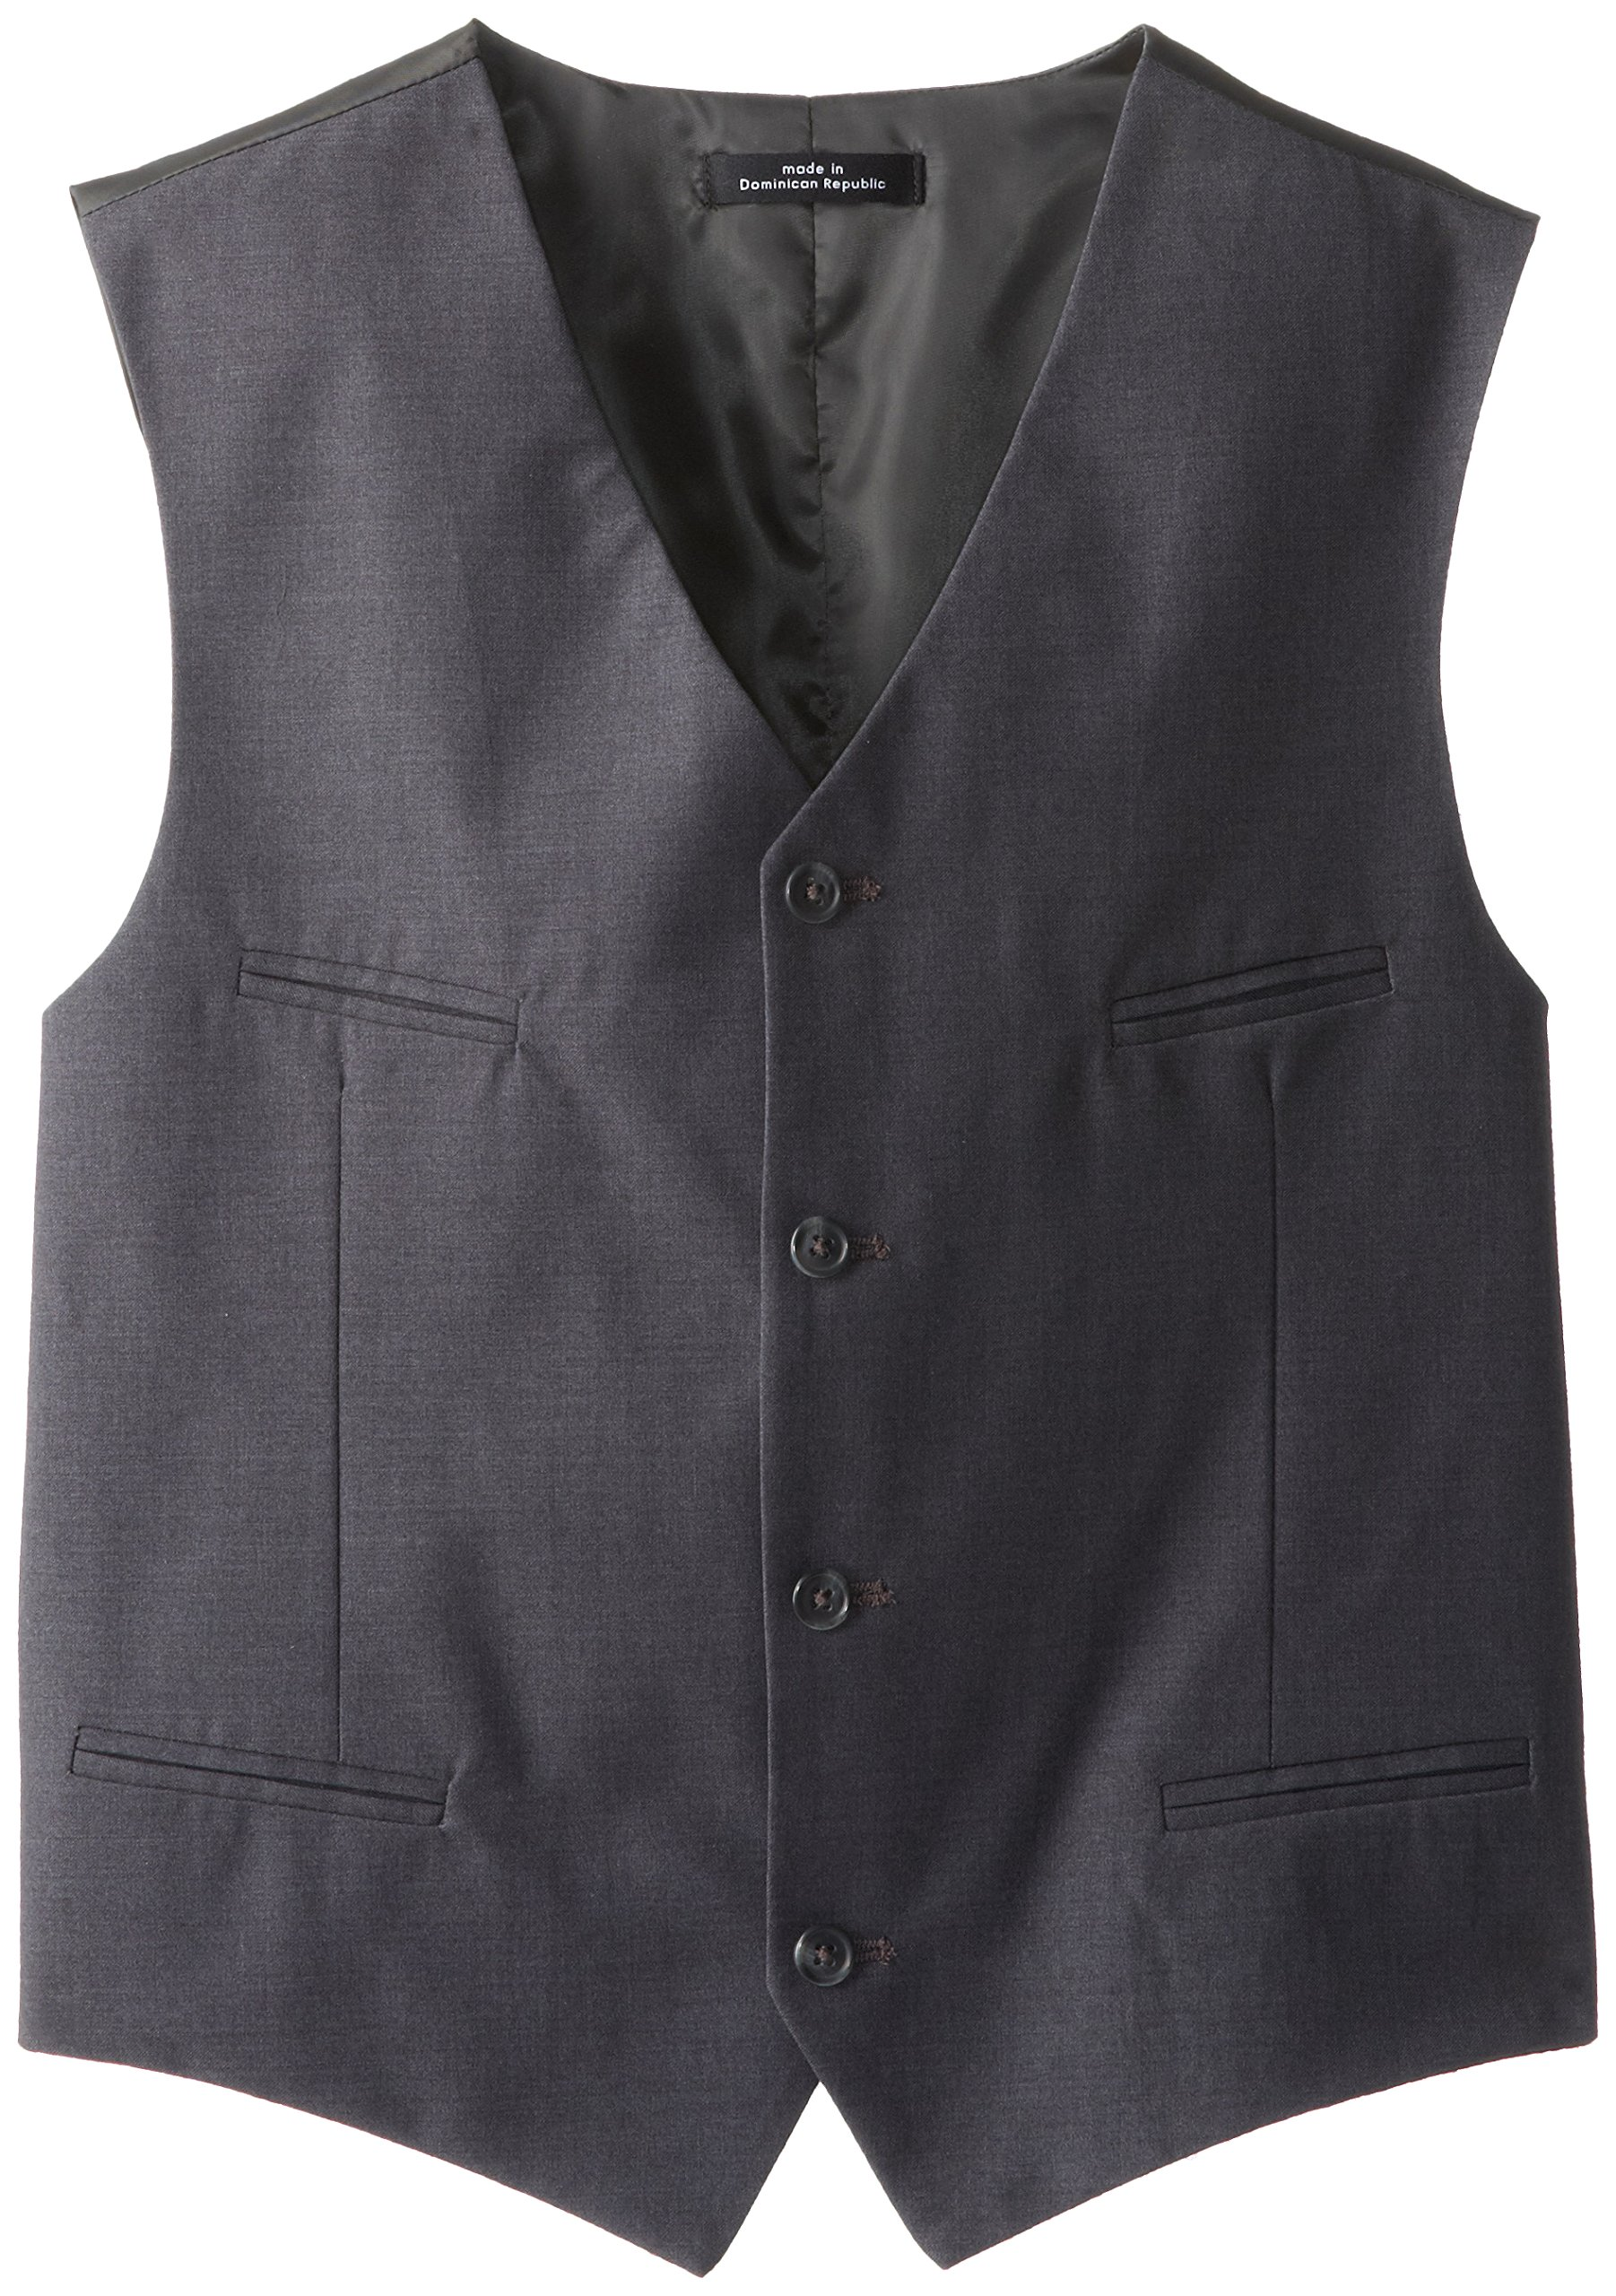 Calvin Klein Big Boys' Fine Line Twill Vest, Dark Charcoal Heather, Large by Calvin Klein (Image #1)